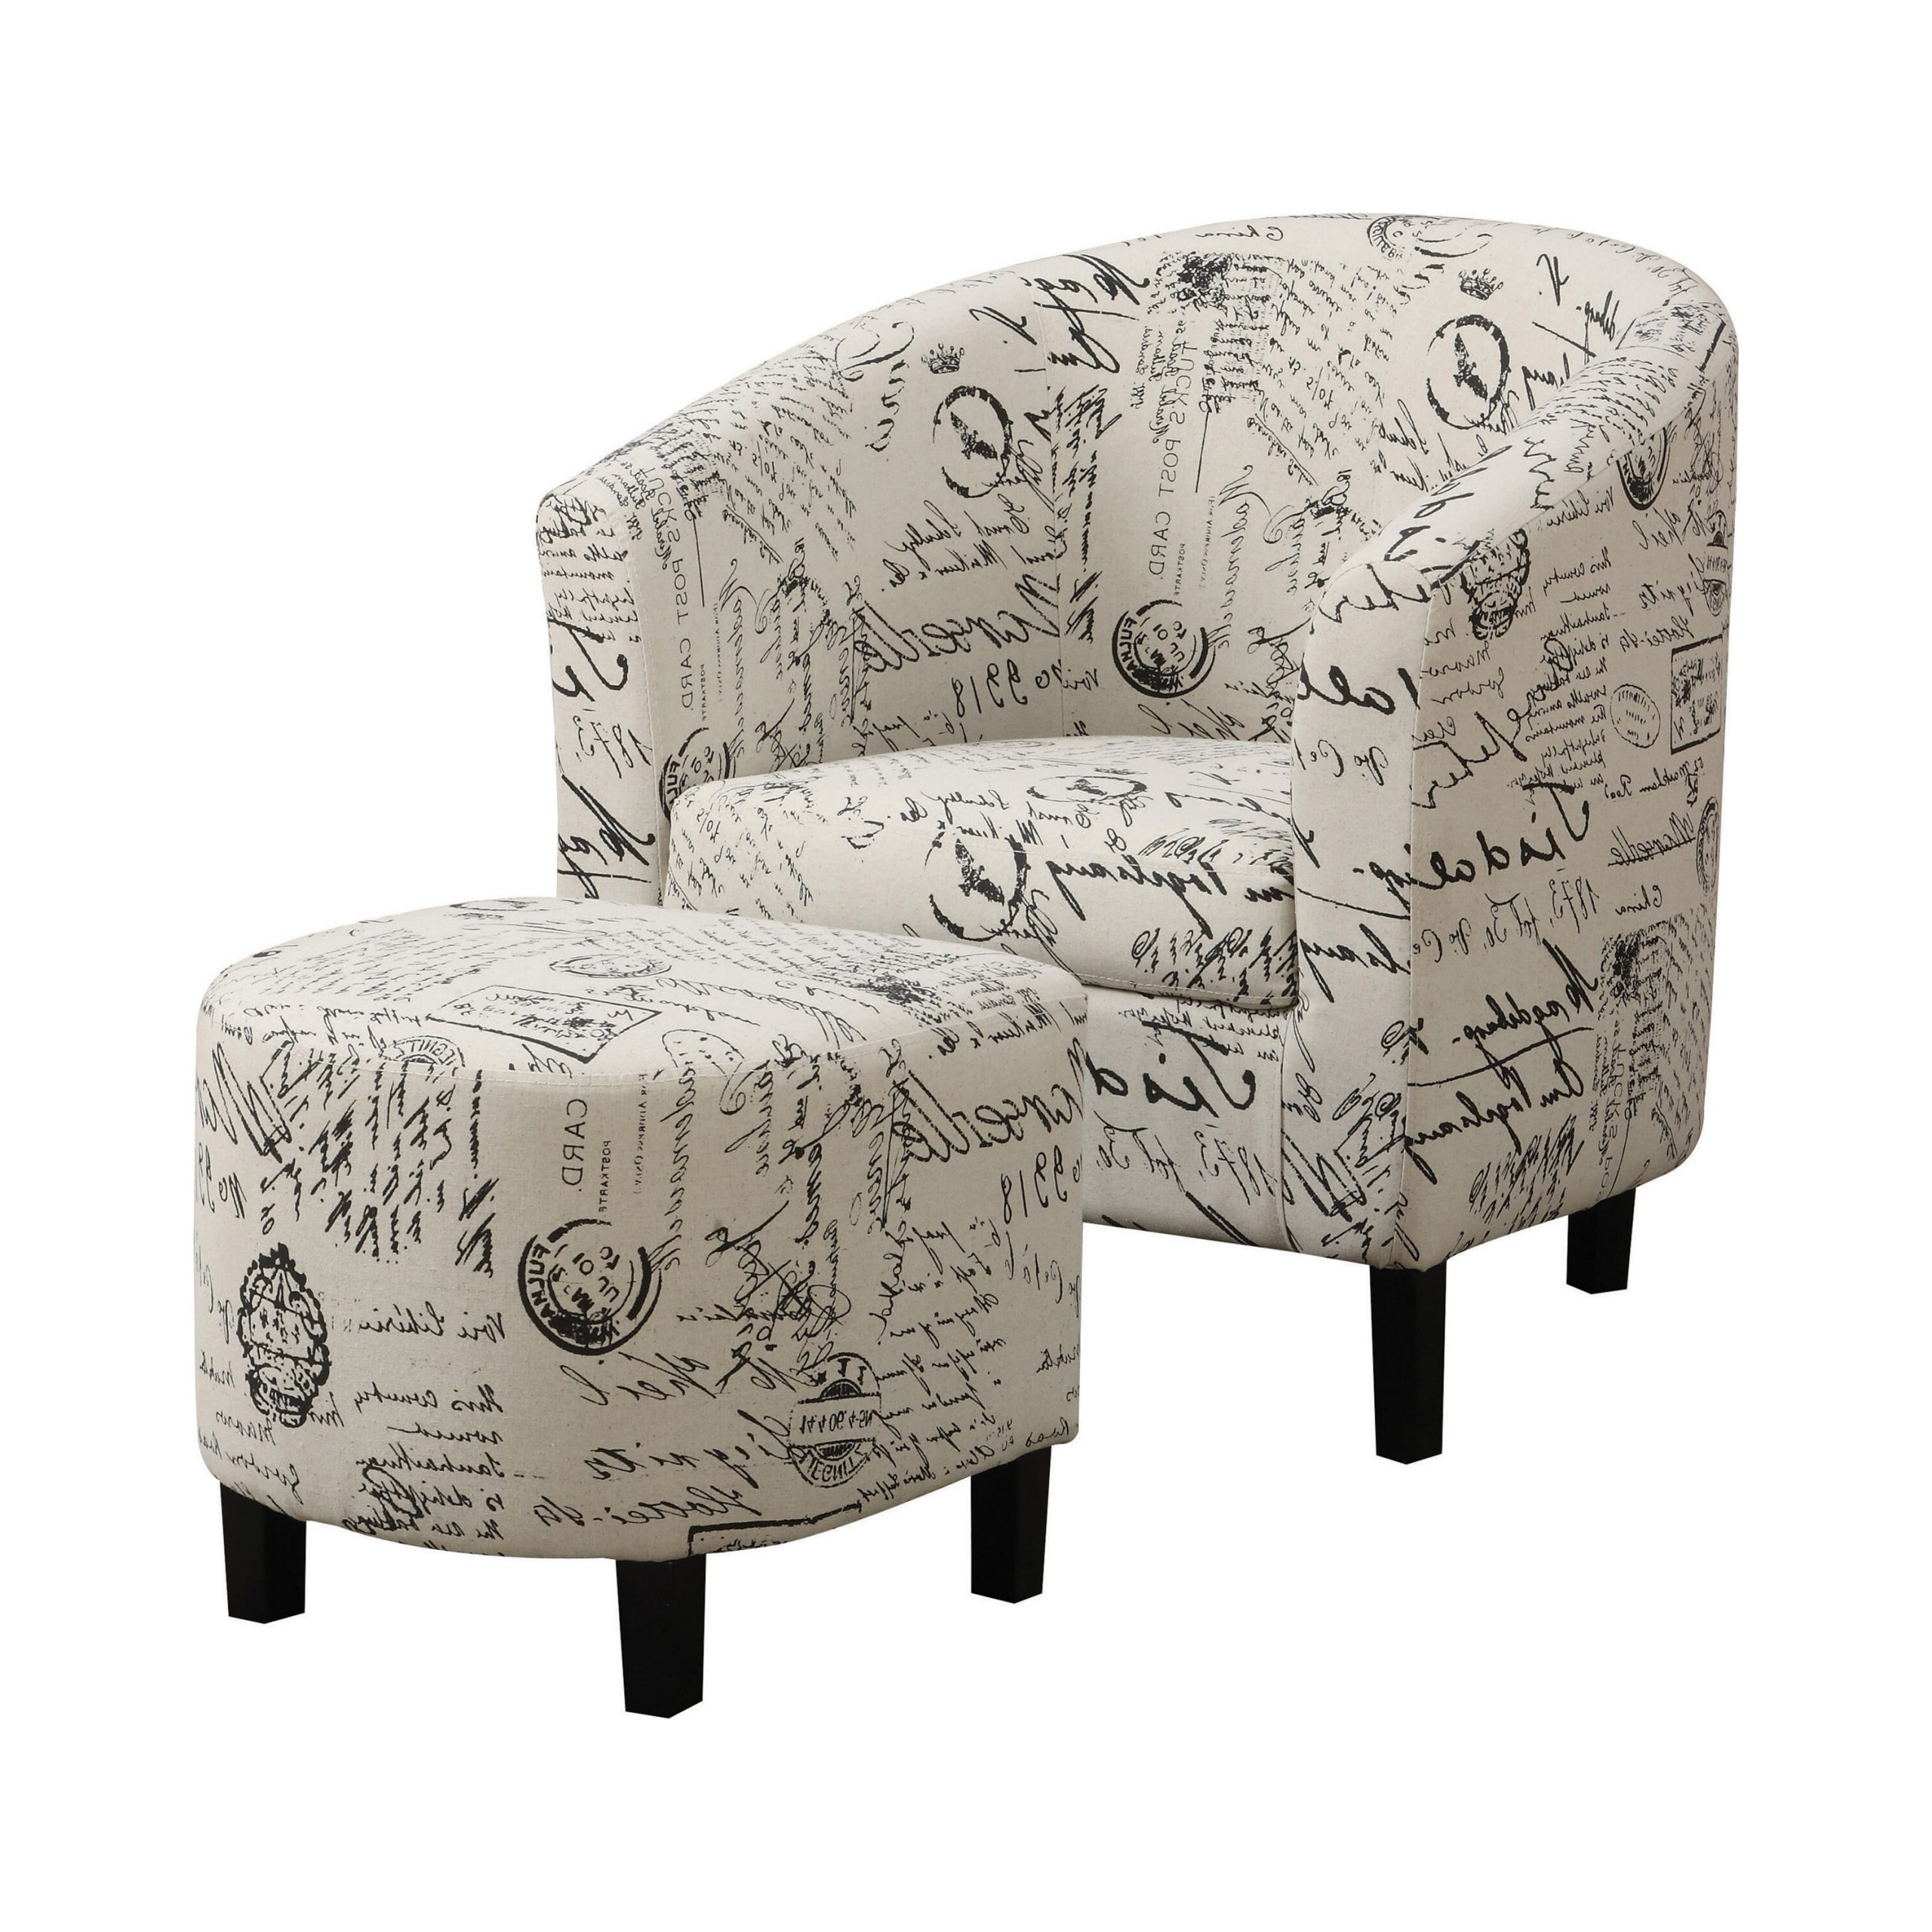 Goodale French Script Barrel Chair And Ottoman Intended For Newest Briseno Barrel Chairs (View 10 of 20)